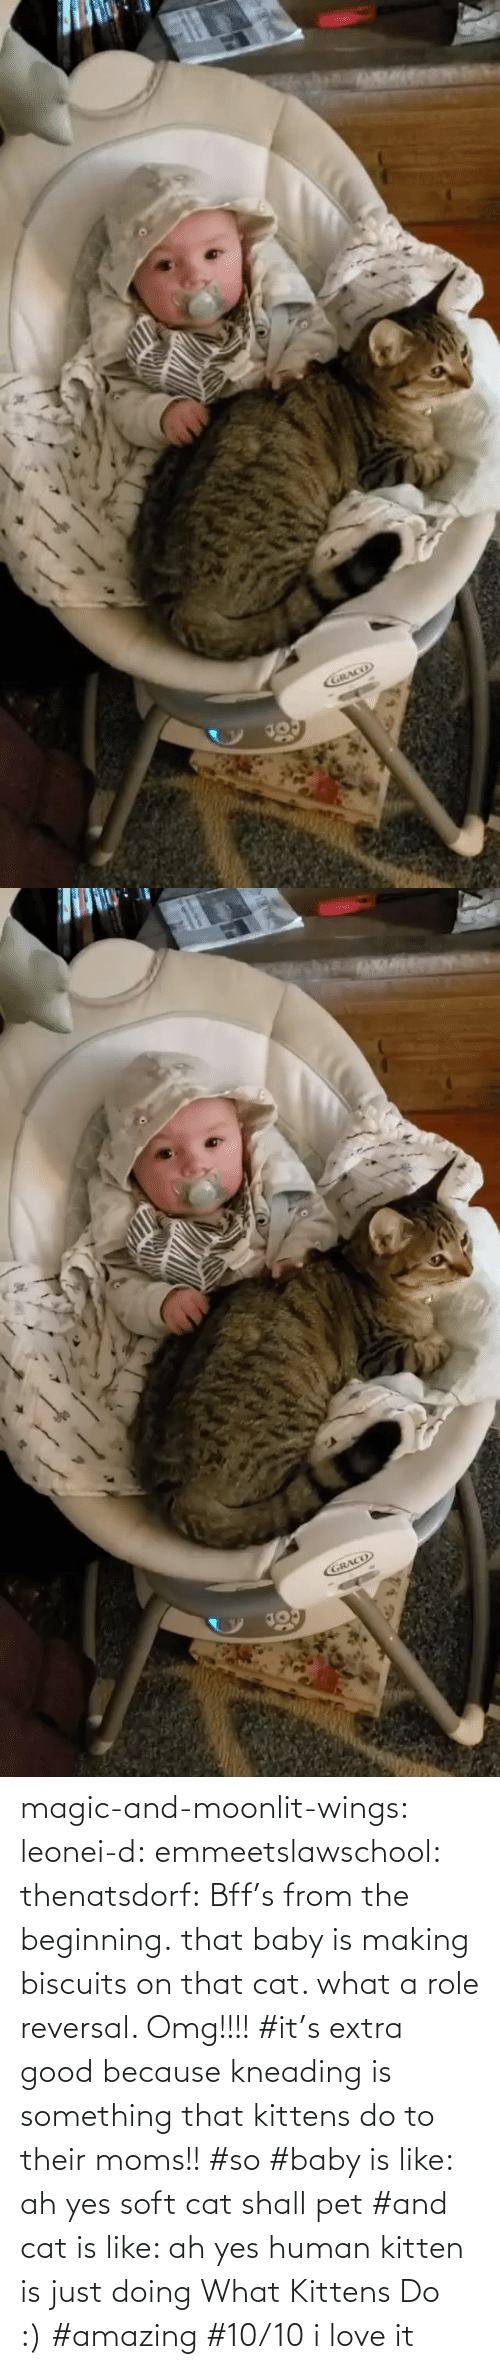 Love: magic-and-moonlit-wings: leonei-d:  emmeetslawschool:  thenatsdorf: Bff's from the beginning. that baby is making biscuits on that cat. what a role reversal.    Omg!!!!     #it's extra good because kneading is something that kittens do to their moms!! #so #baby is like: ah yes soft cat shall pet #and cat is like: ah yes human kitten is just doing What Kittens Do :) #amazing #10/10 i love it